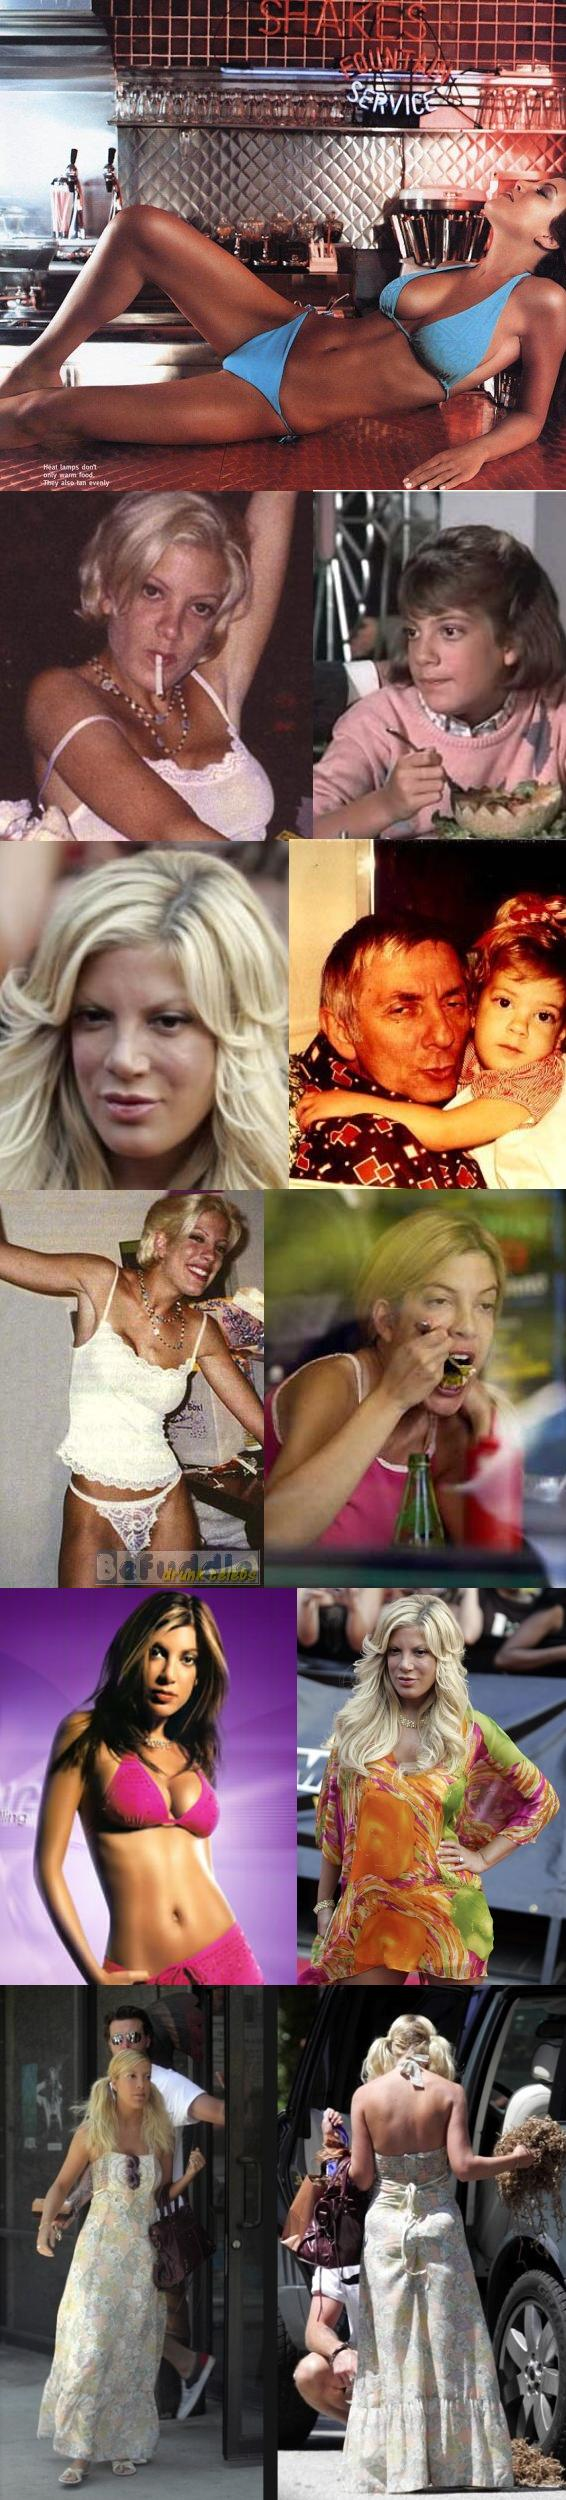 tori-spelling-picture-montage-10-11-2006.JPG